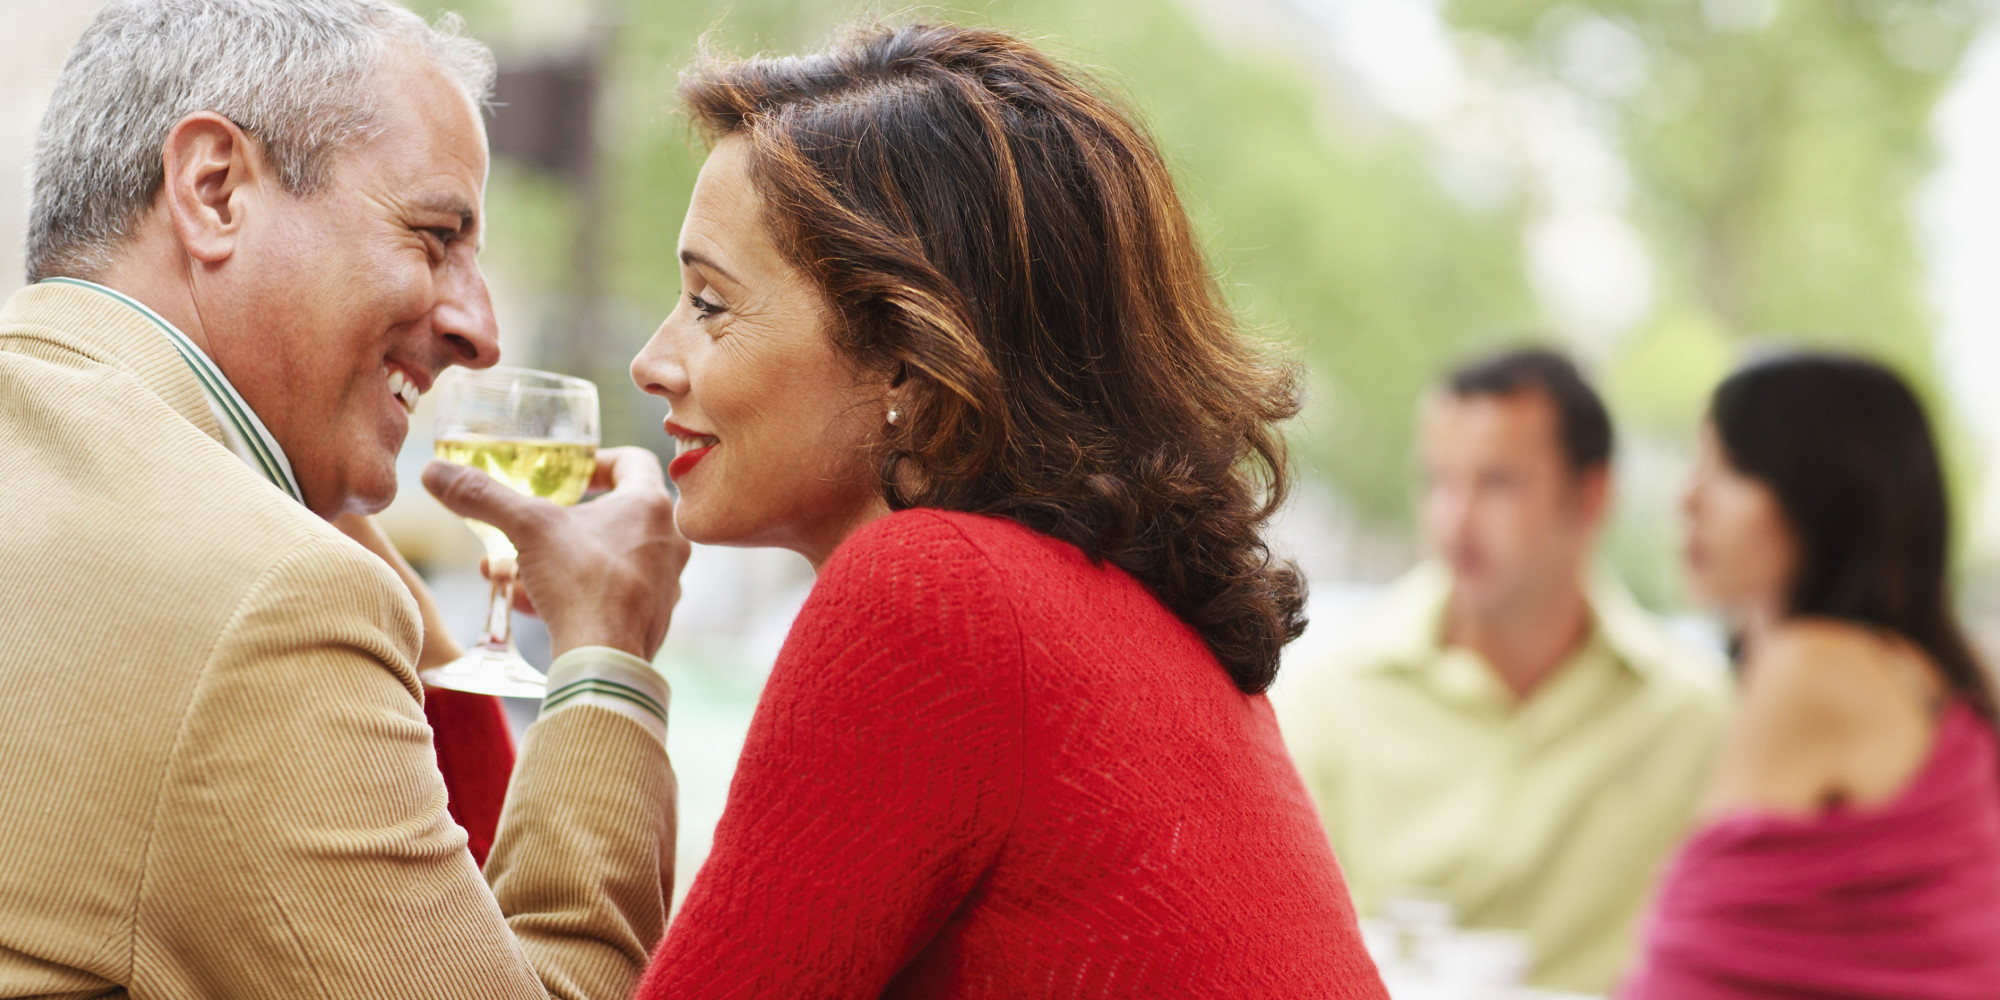 Spanish Divorced Ons Dating Looking For Men